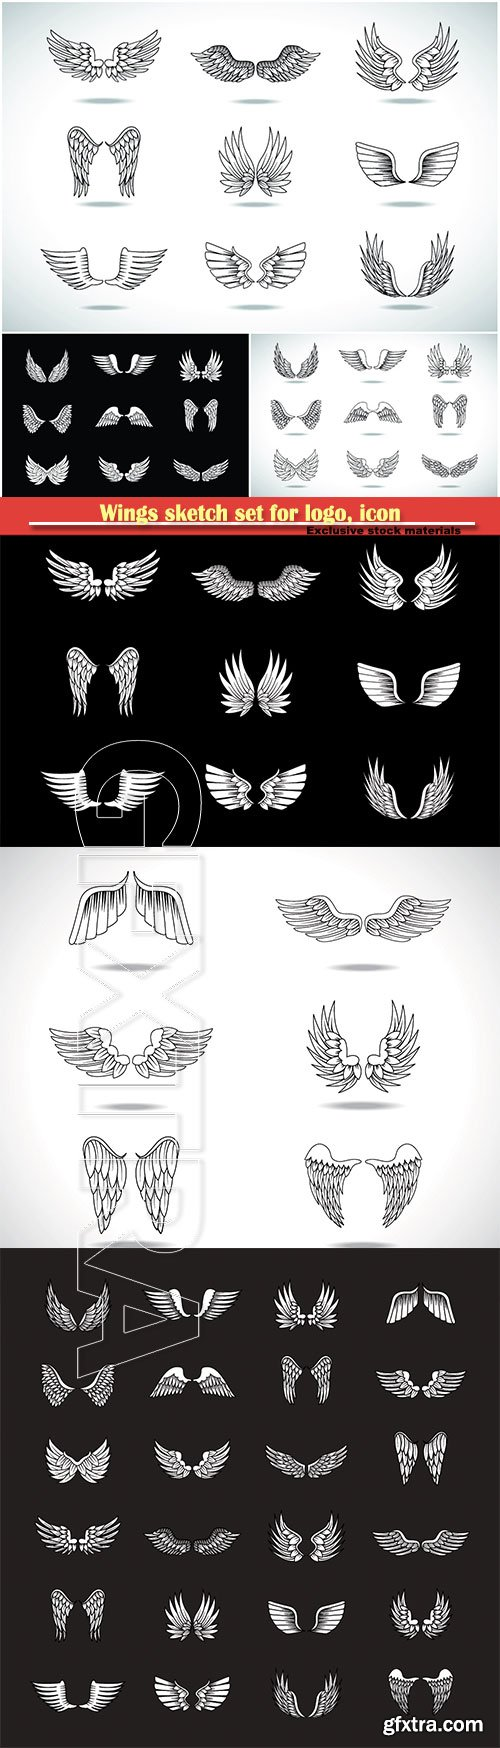 Wings sketch set for logo, icon, tattoo templates, emblem, label